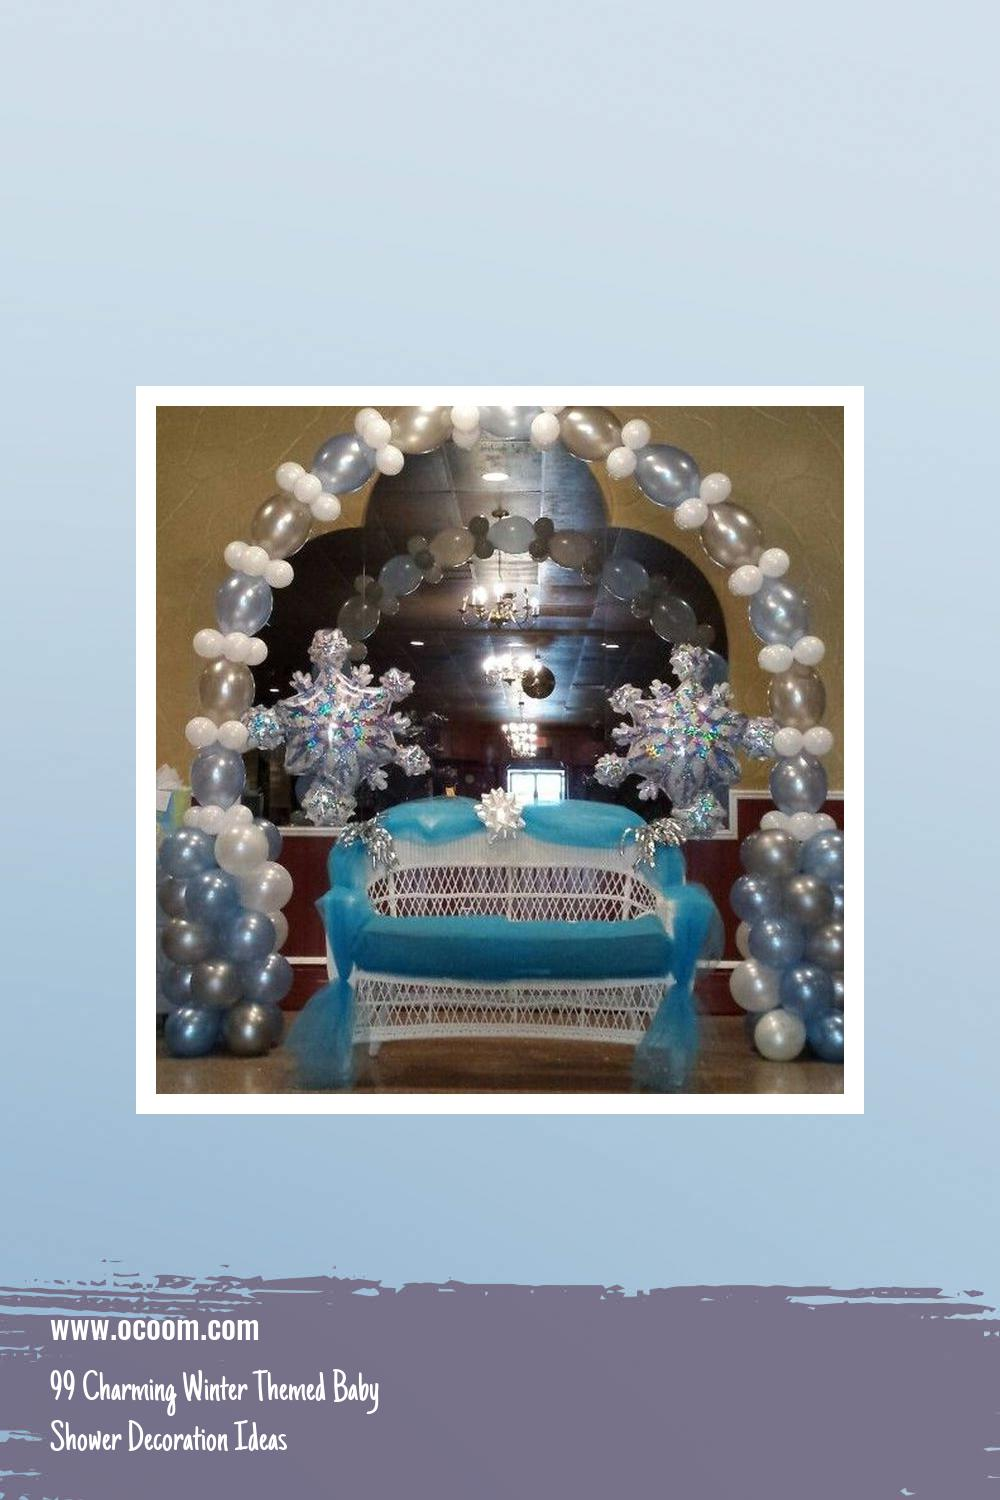 99 Charming Winter Themed Baby Shower Decoration Ideas 26